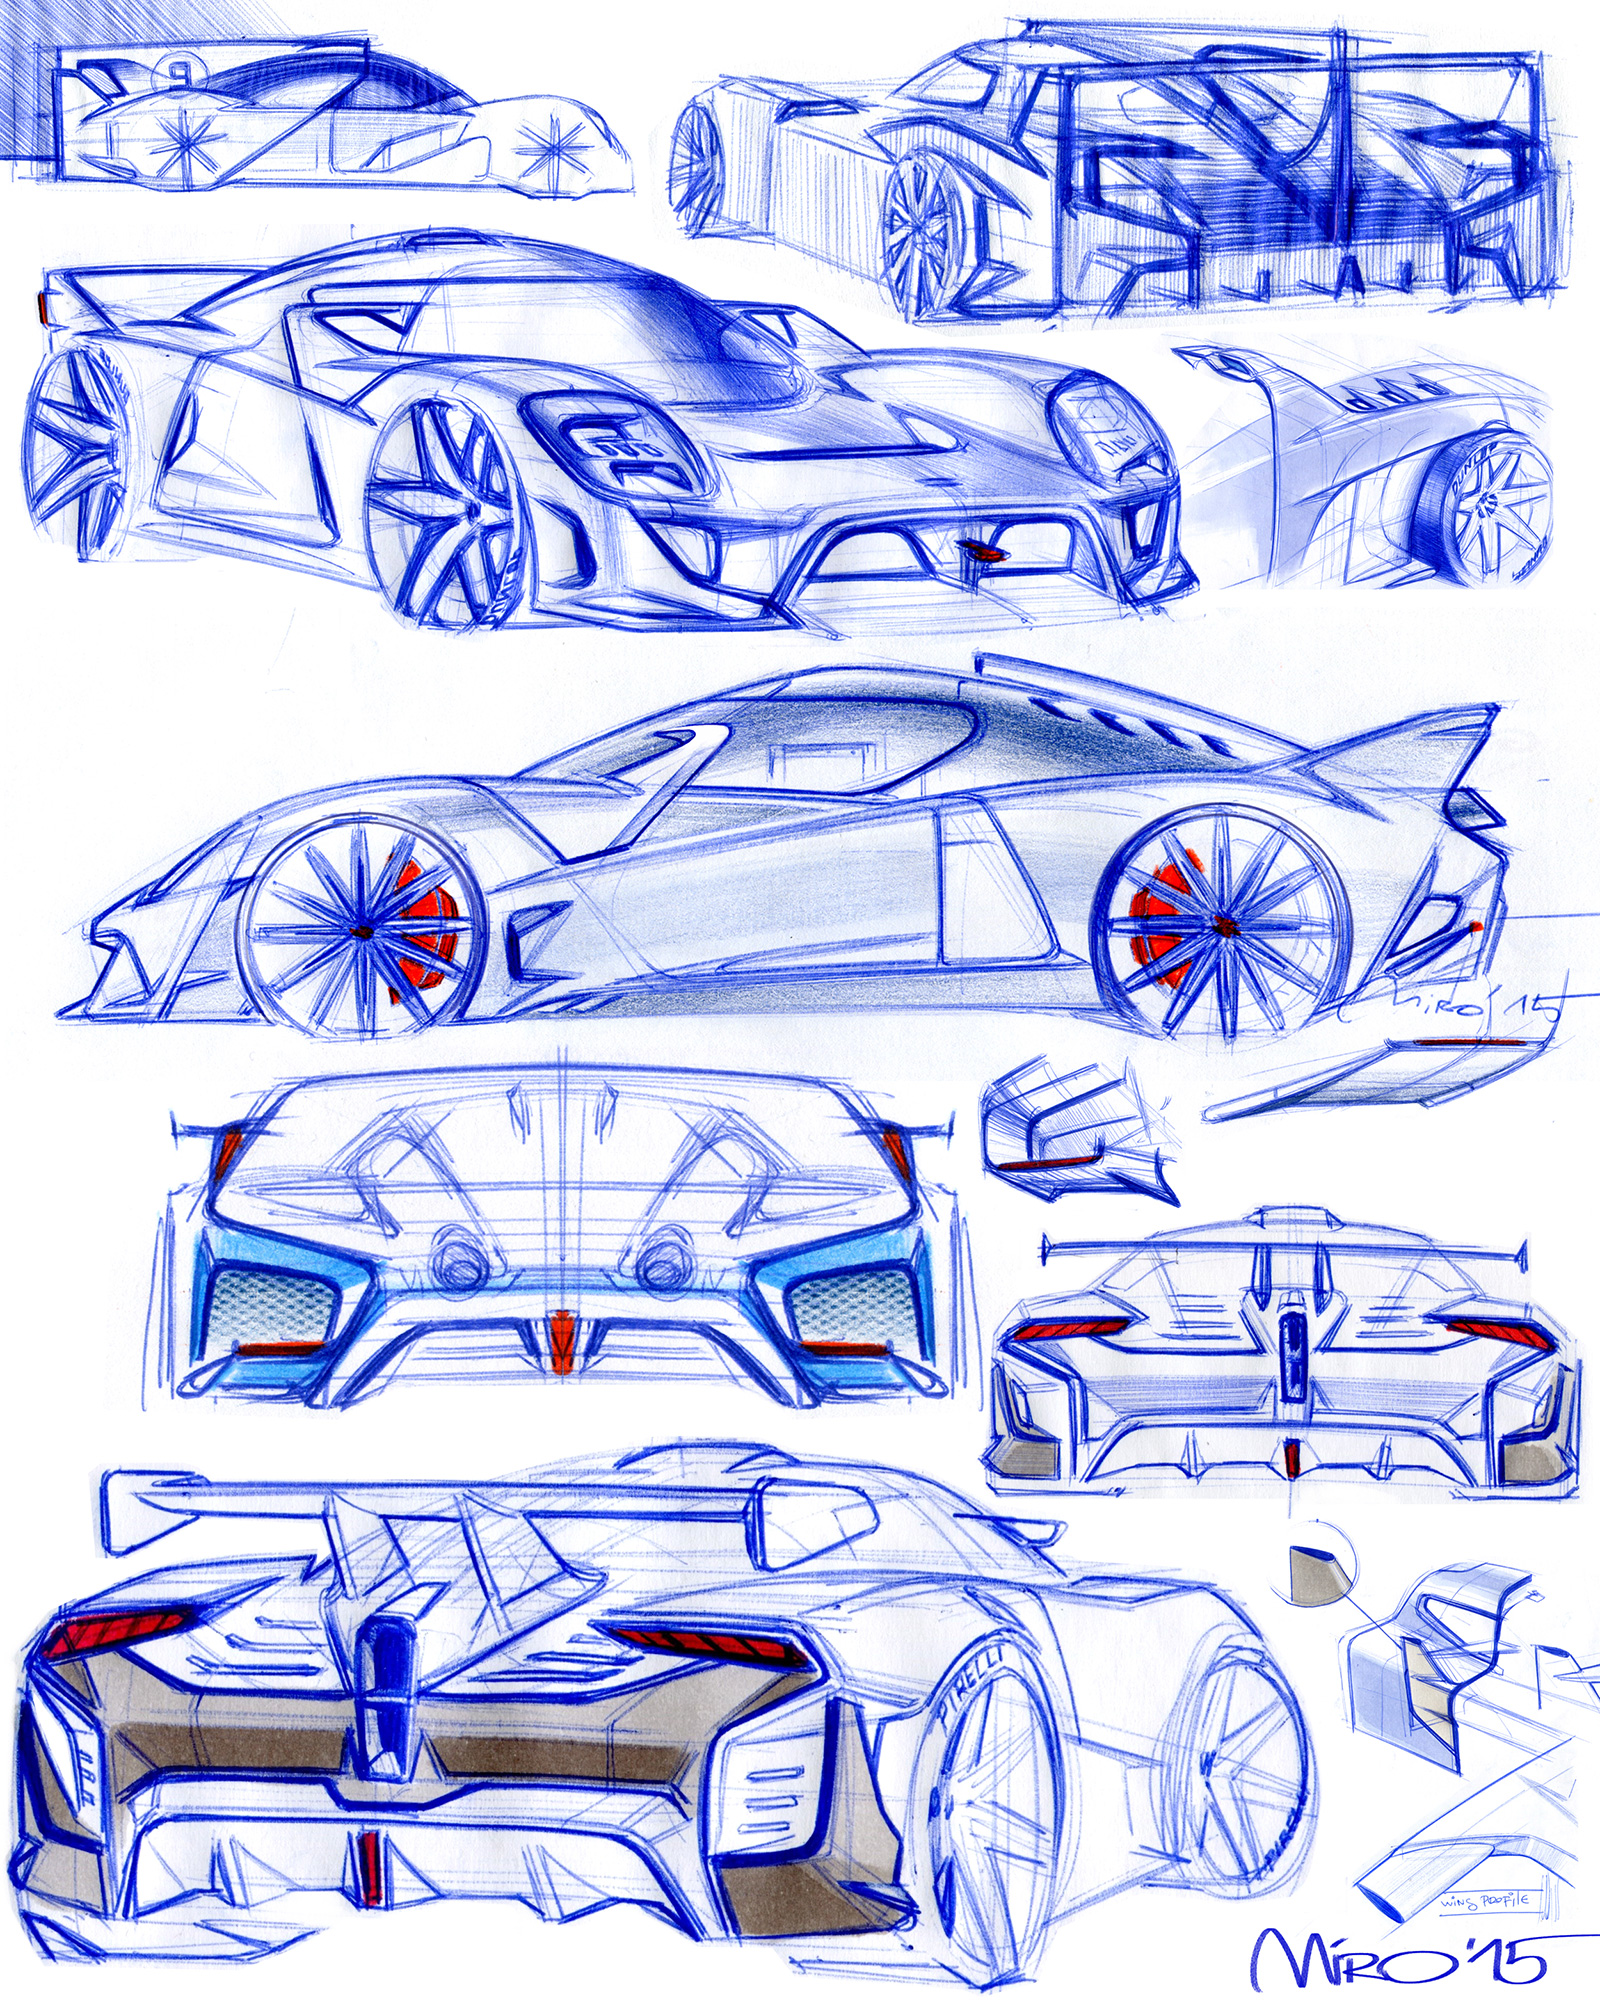 EIDO GTR Concept. Rear End Sketches by Miroslav Dimitrov | Copyright © 2018 Miroslav Dimitrov